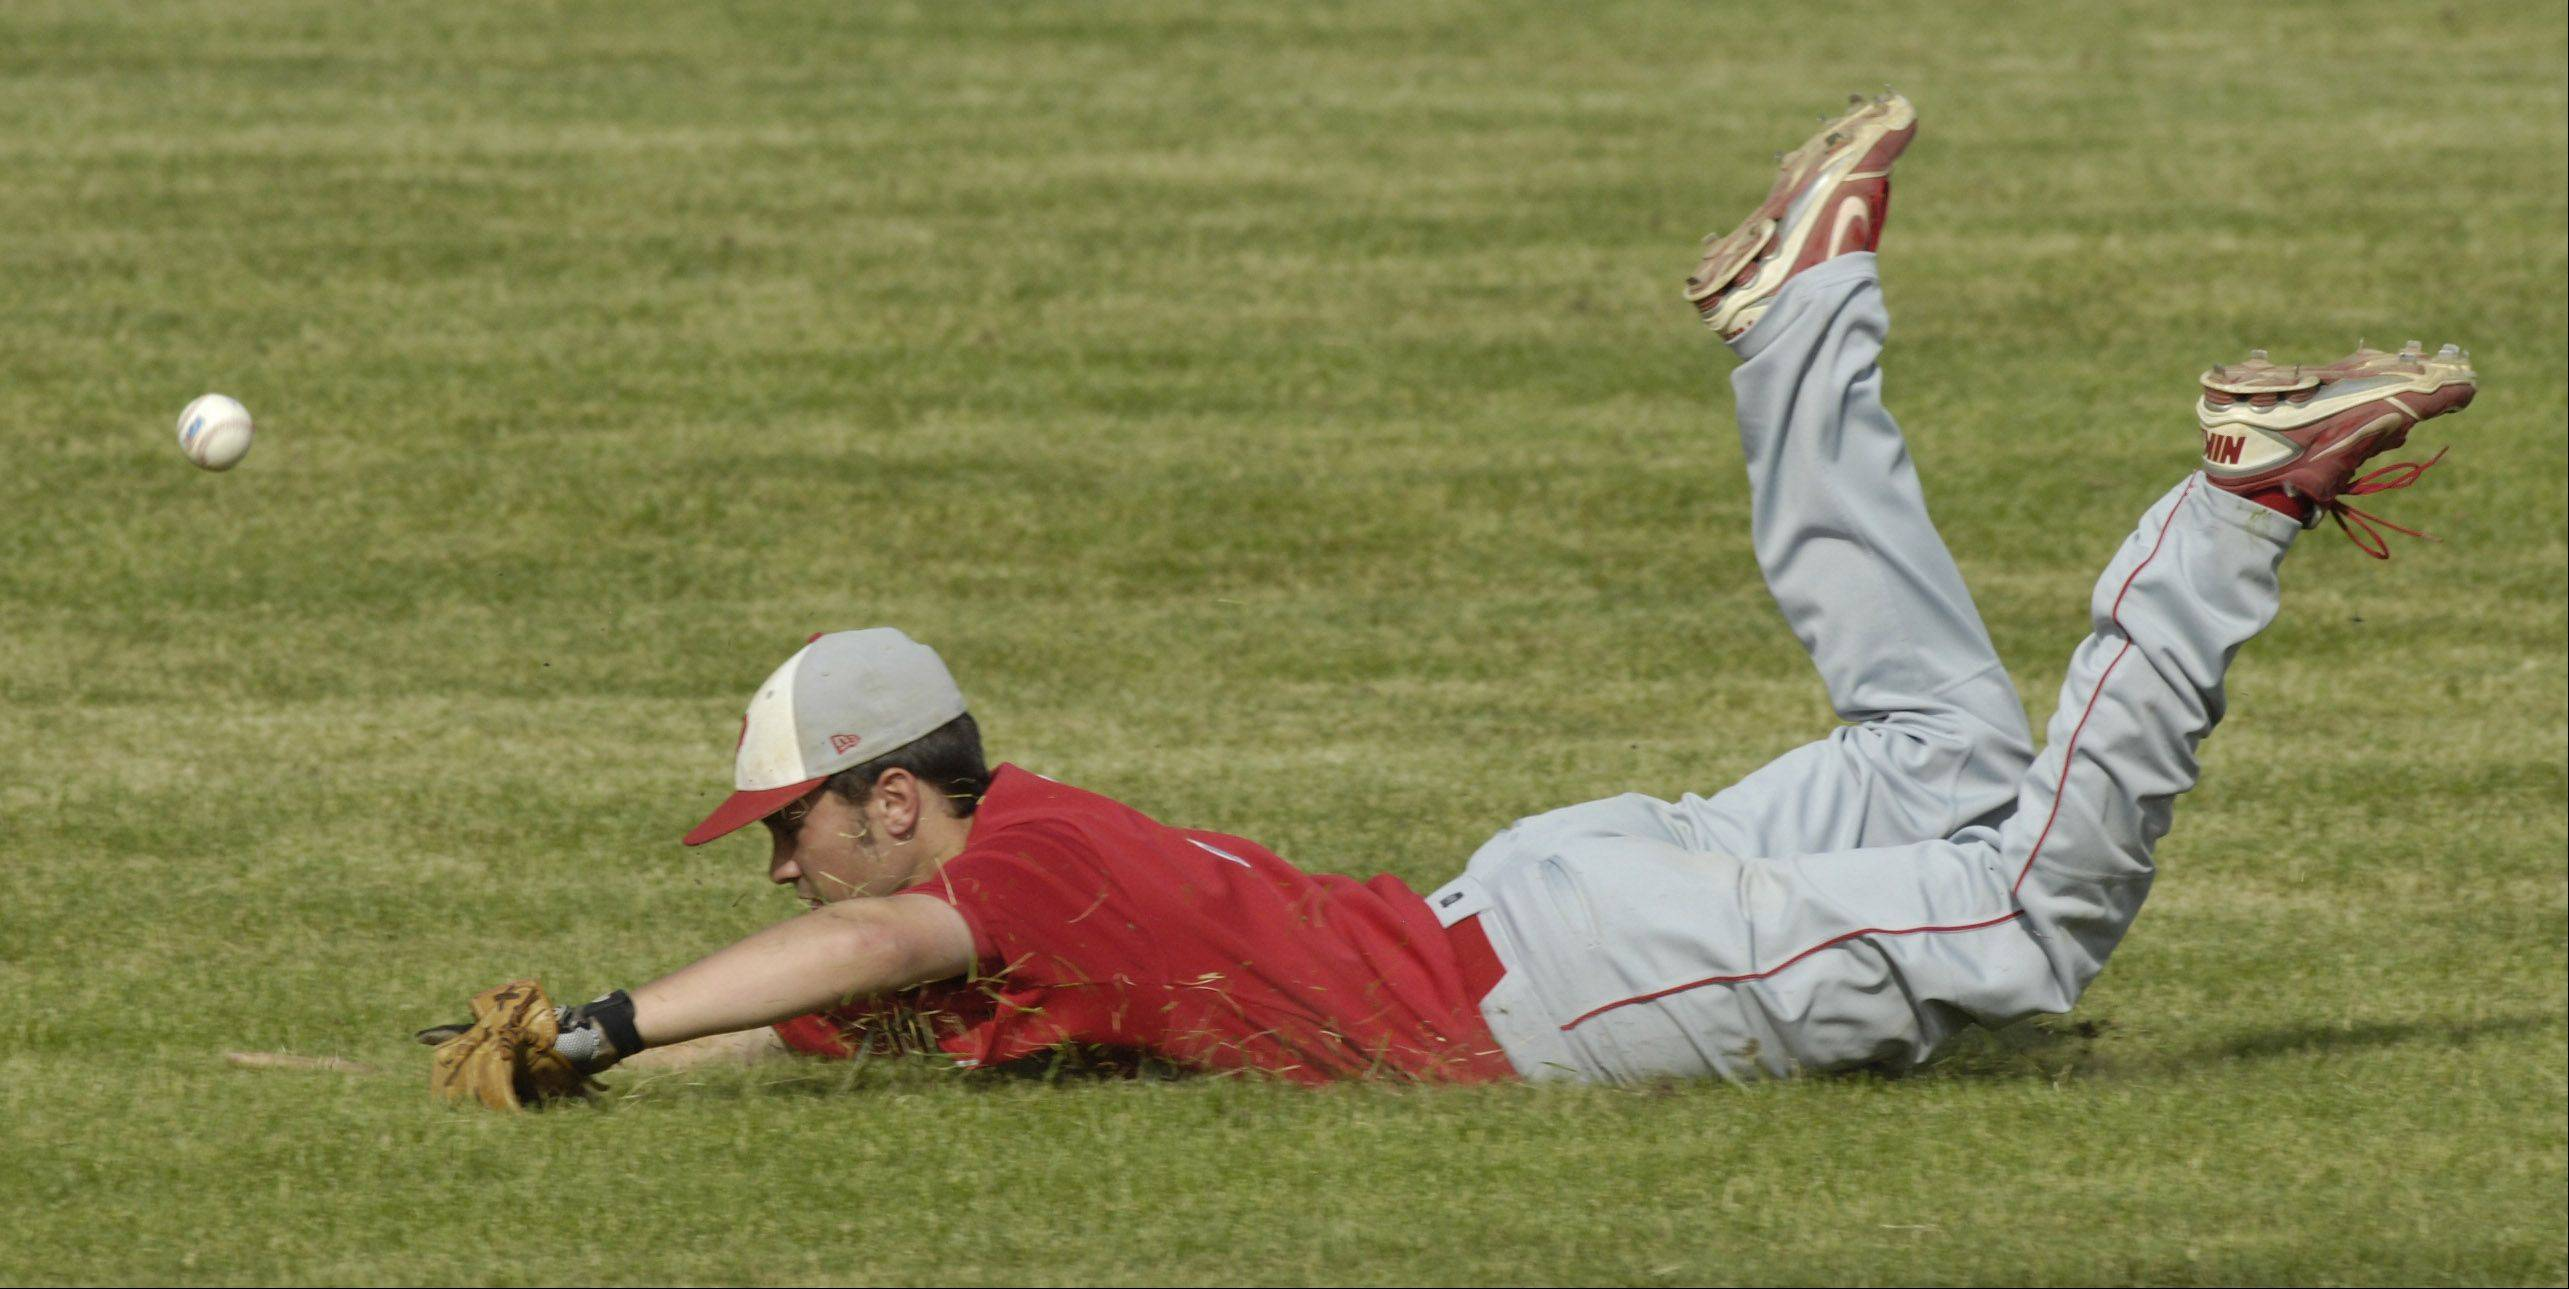 Palatine's Scott Schneberger makes a diving attempt for the ball during Wednesday's regional semifinal against Hersey.